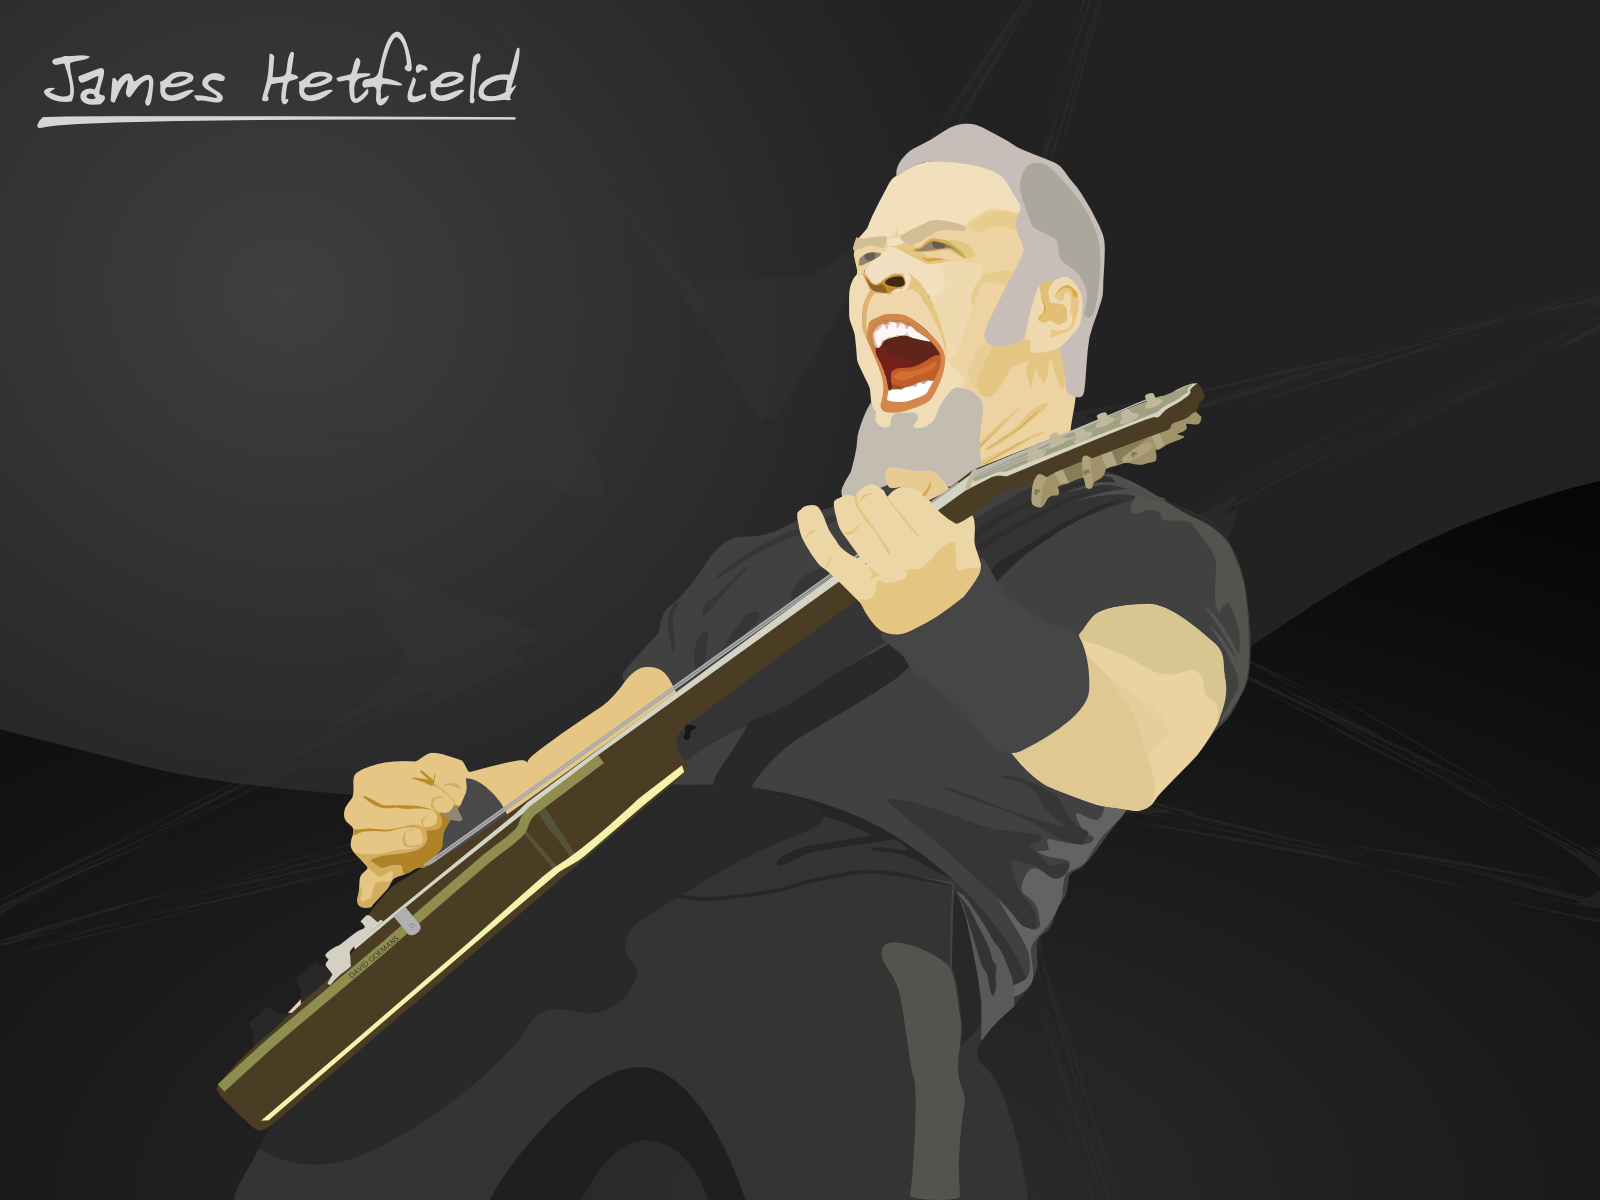 Vector of James Hetfield